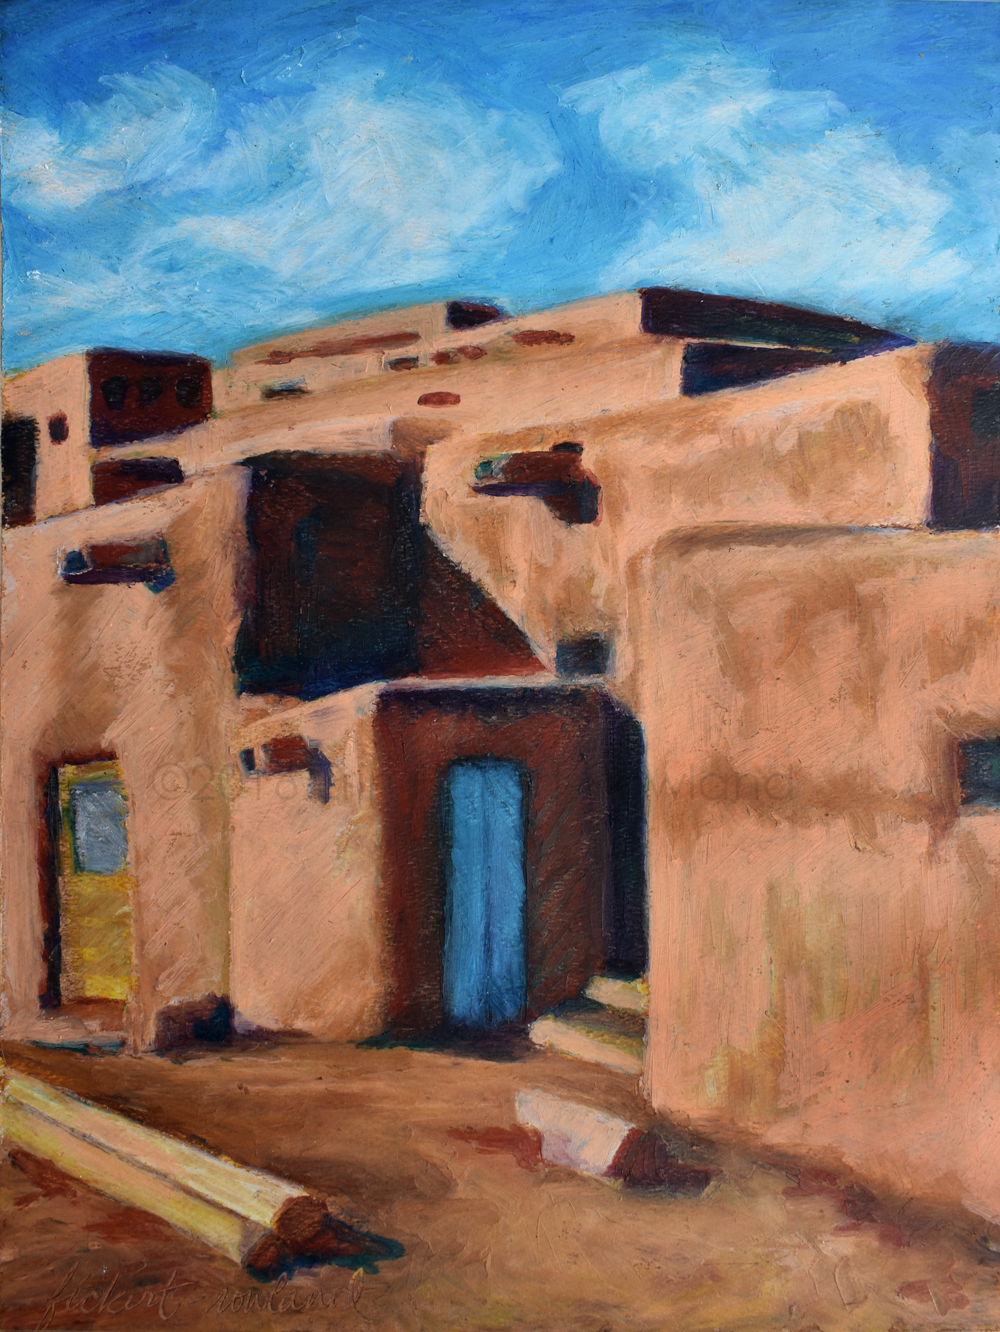 """Hlauuma, Taos Pueblo (North House)""  9 in x 12 in  Matted to 11 in x 14 in"